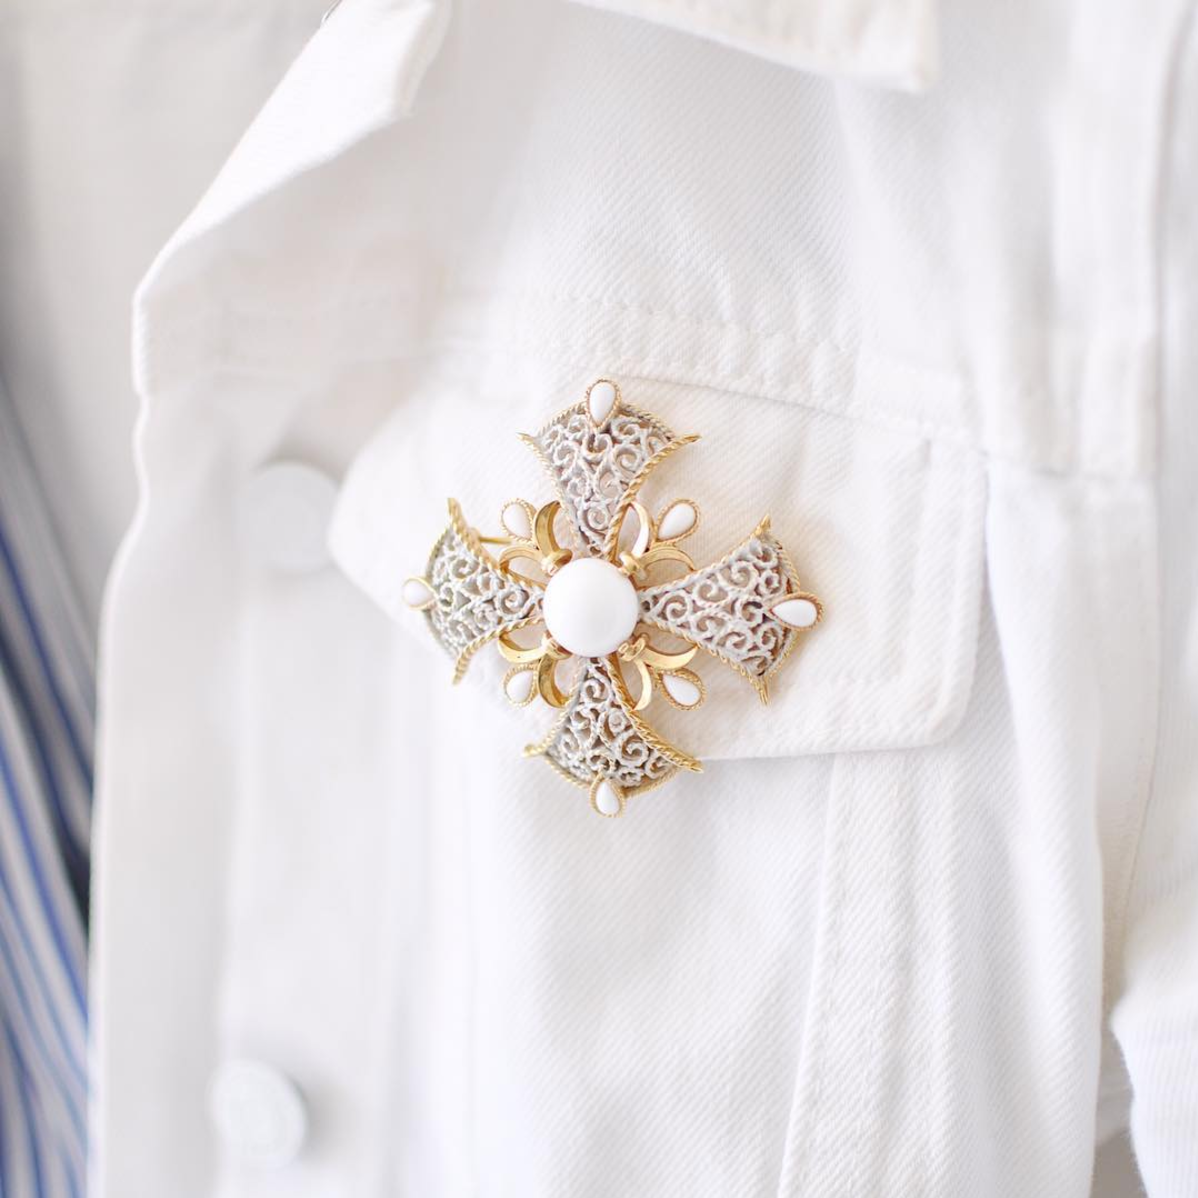 Put a Pin On It: A Brooch That Is (Vintage brooch on a white denim jacket lapel) | Click through for the details. | glitterinc.com | @glitterinc